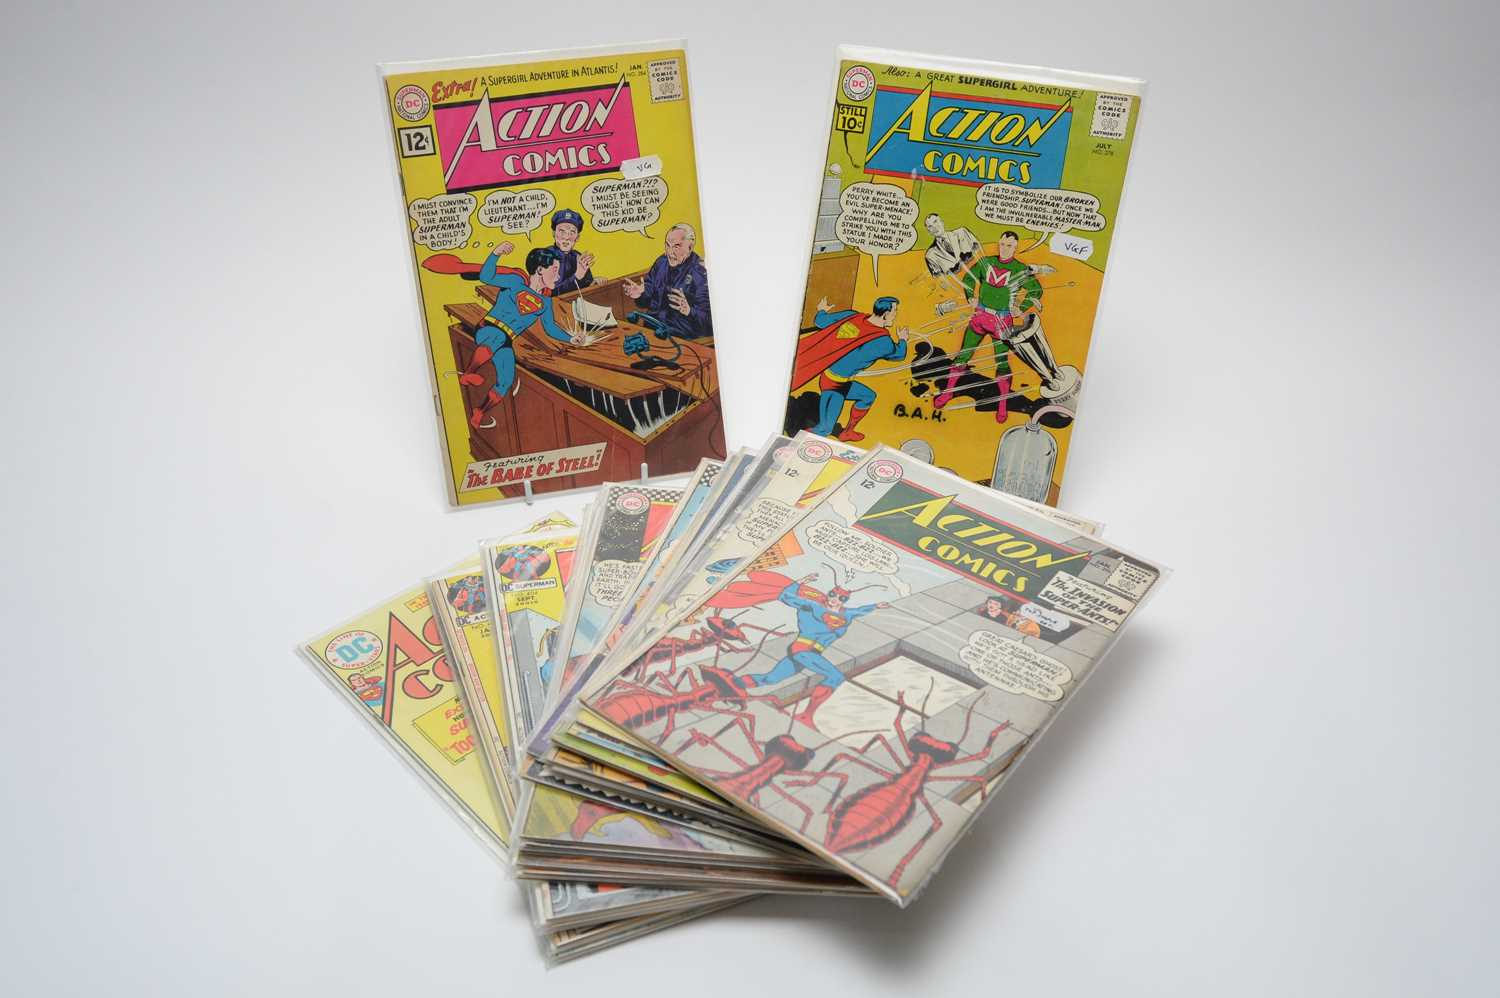 Lot 16 - Action Comic by DC.